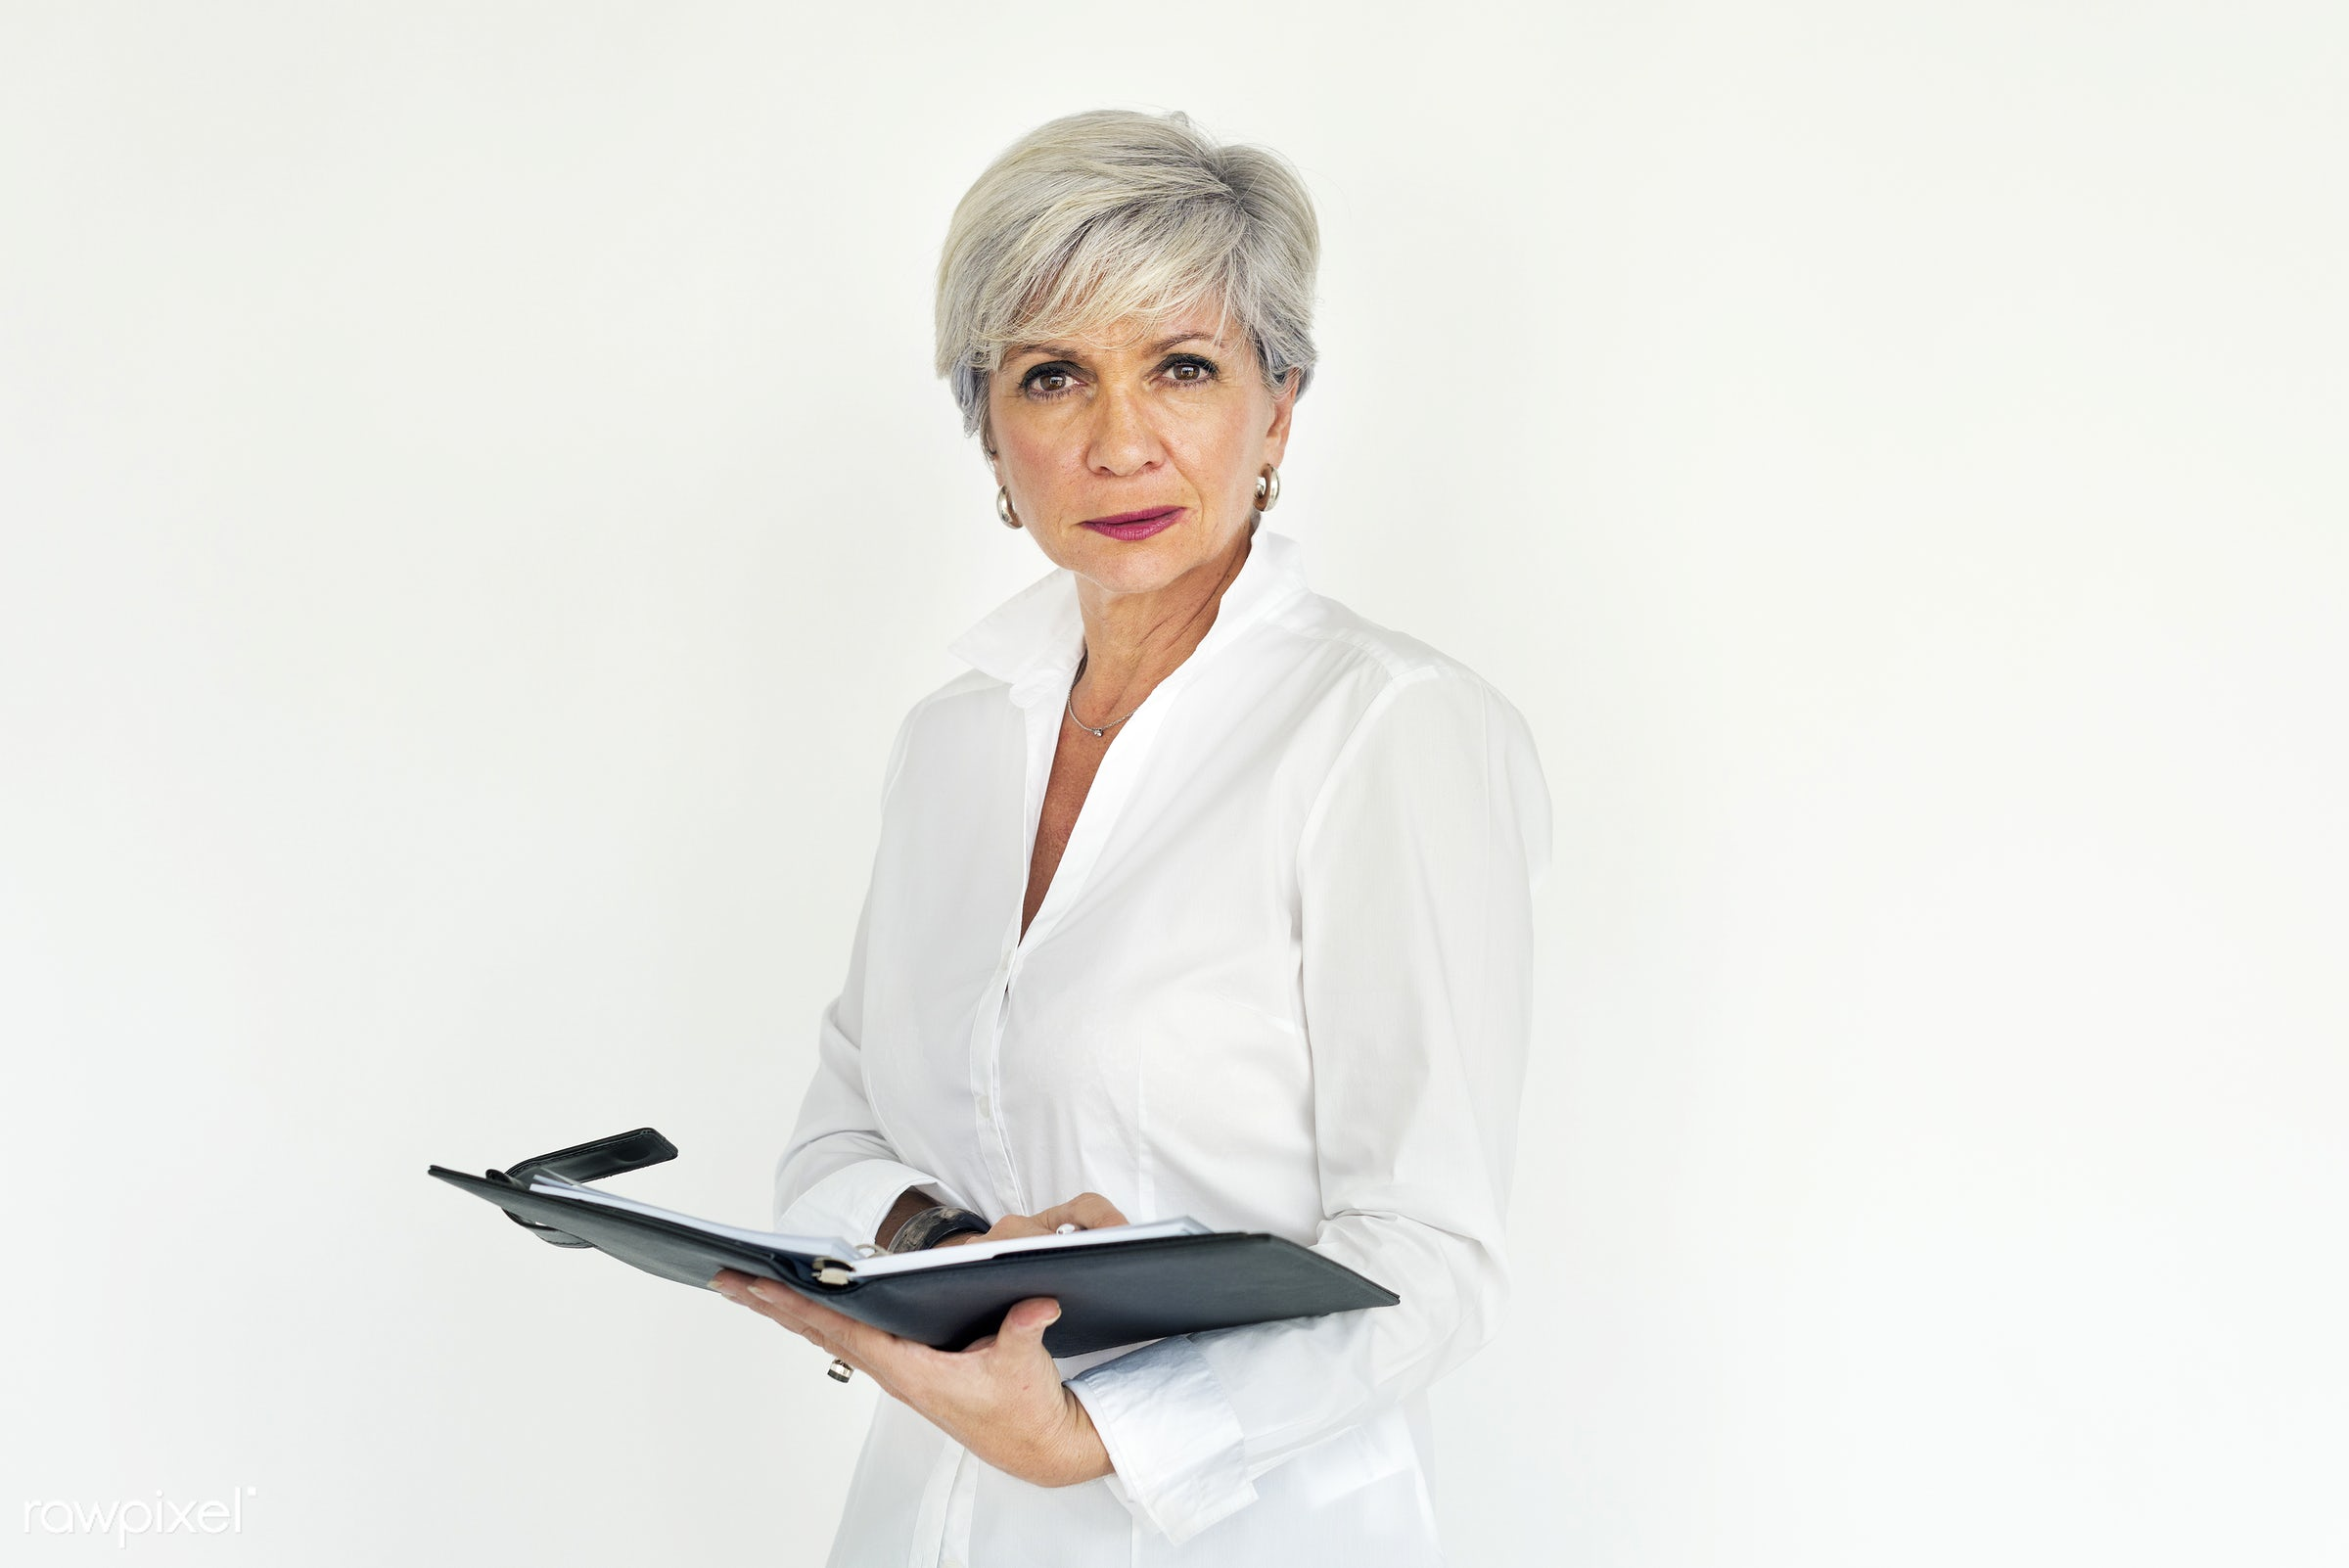 studio, expression, person, technology, people, woman, laptop, working, isolated, connection, white, businesswoman, portrait...